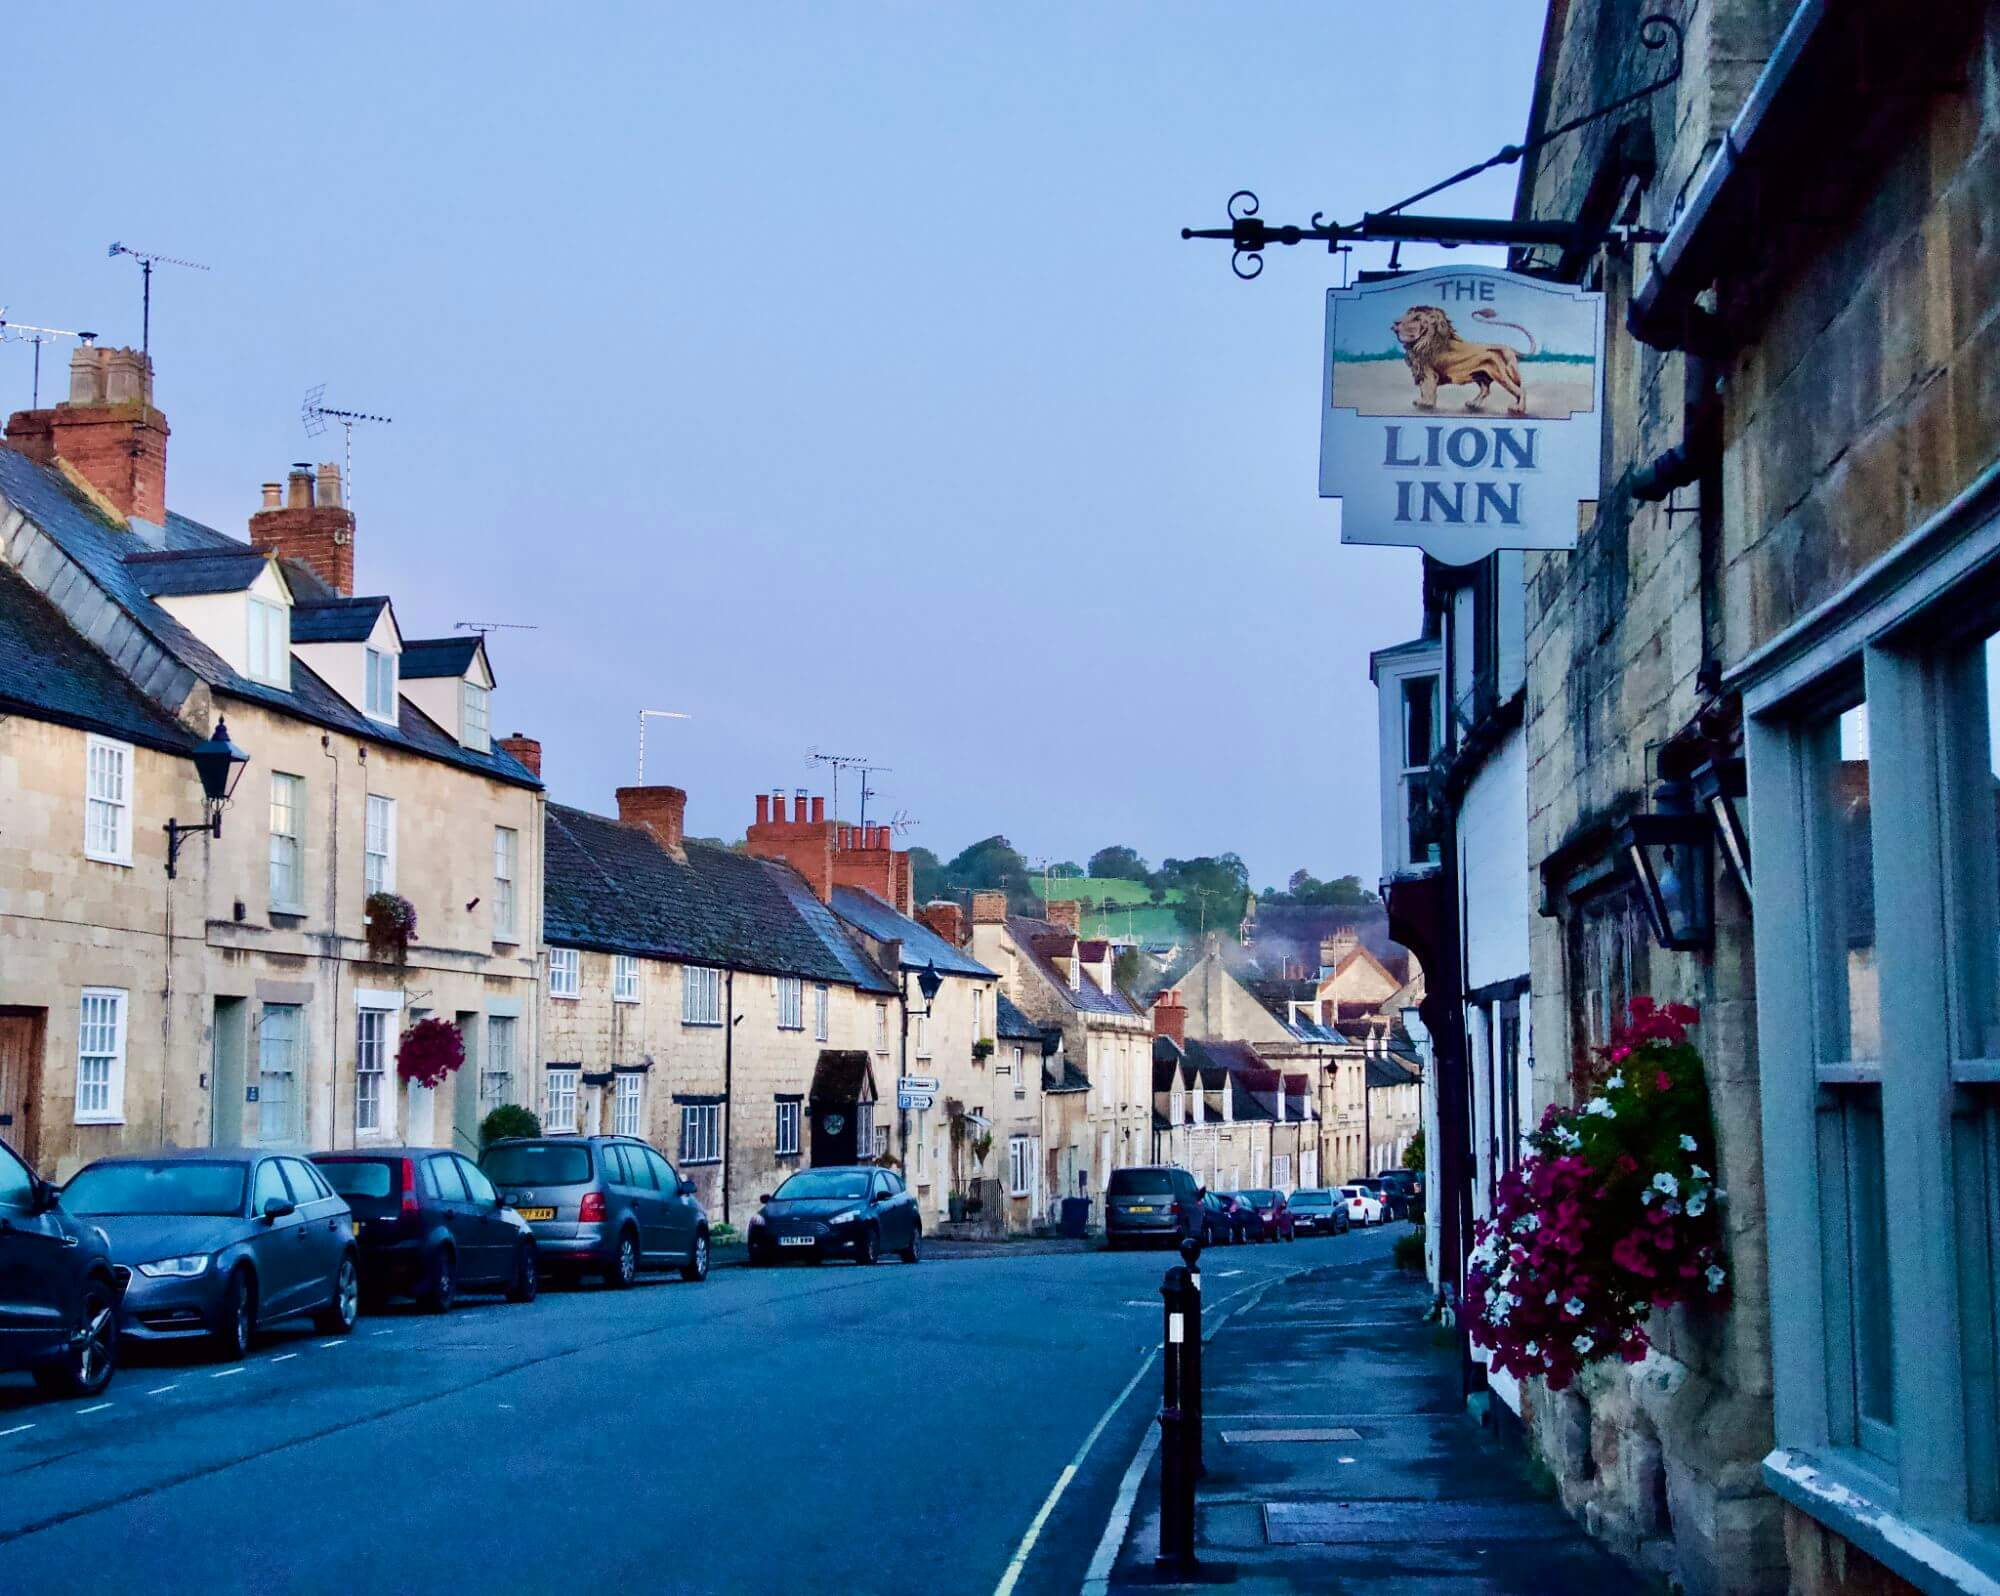 North Street in Winchcombe